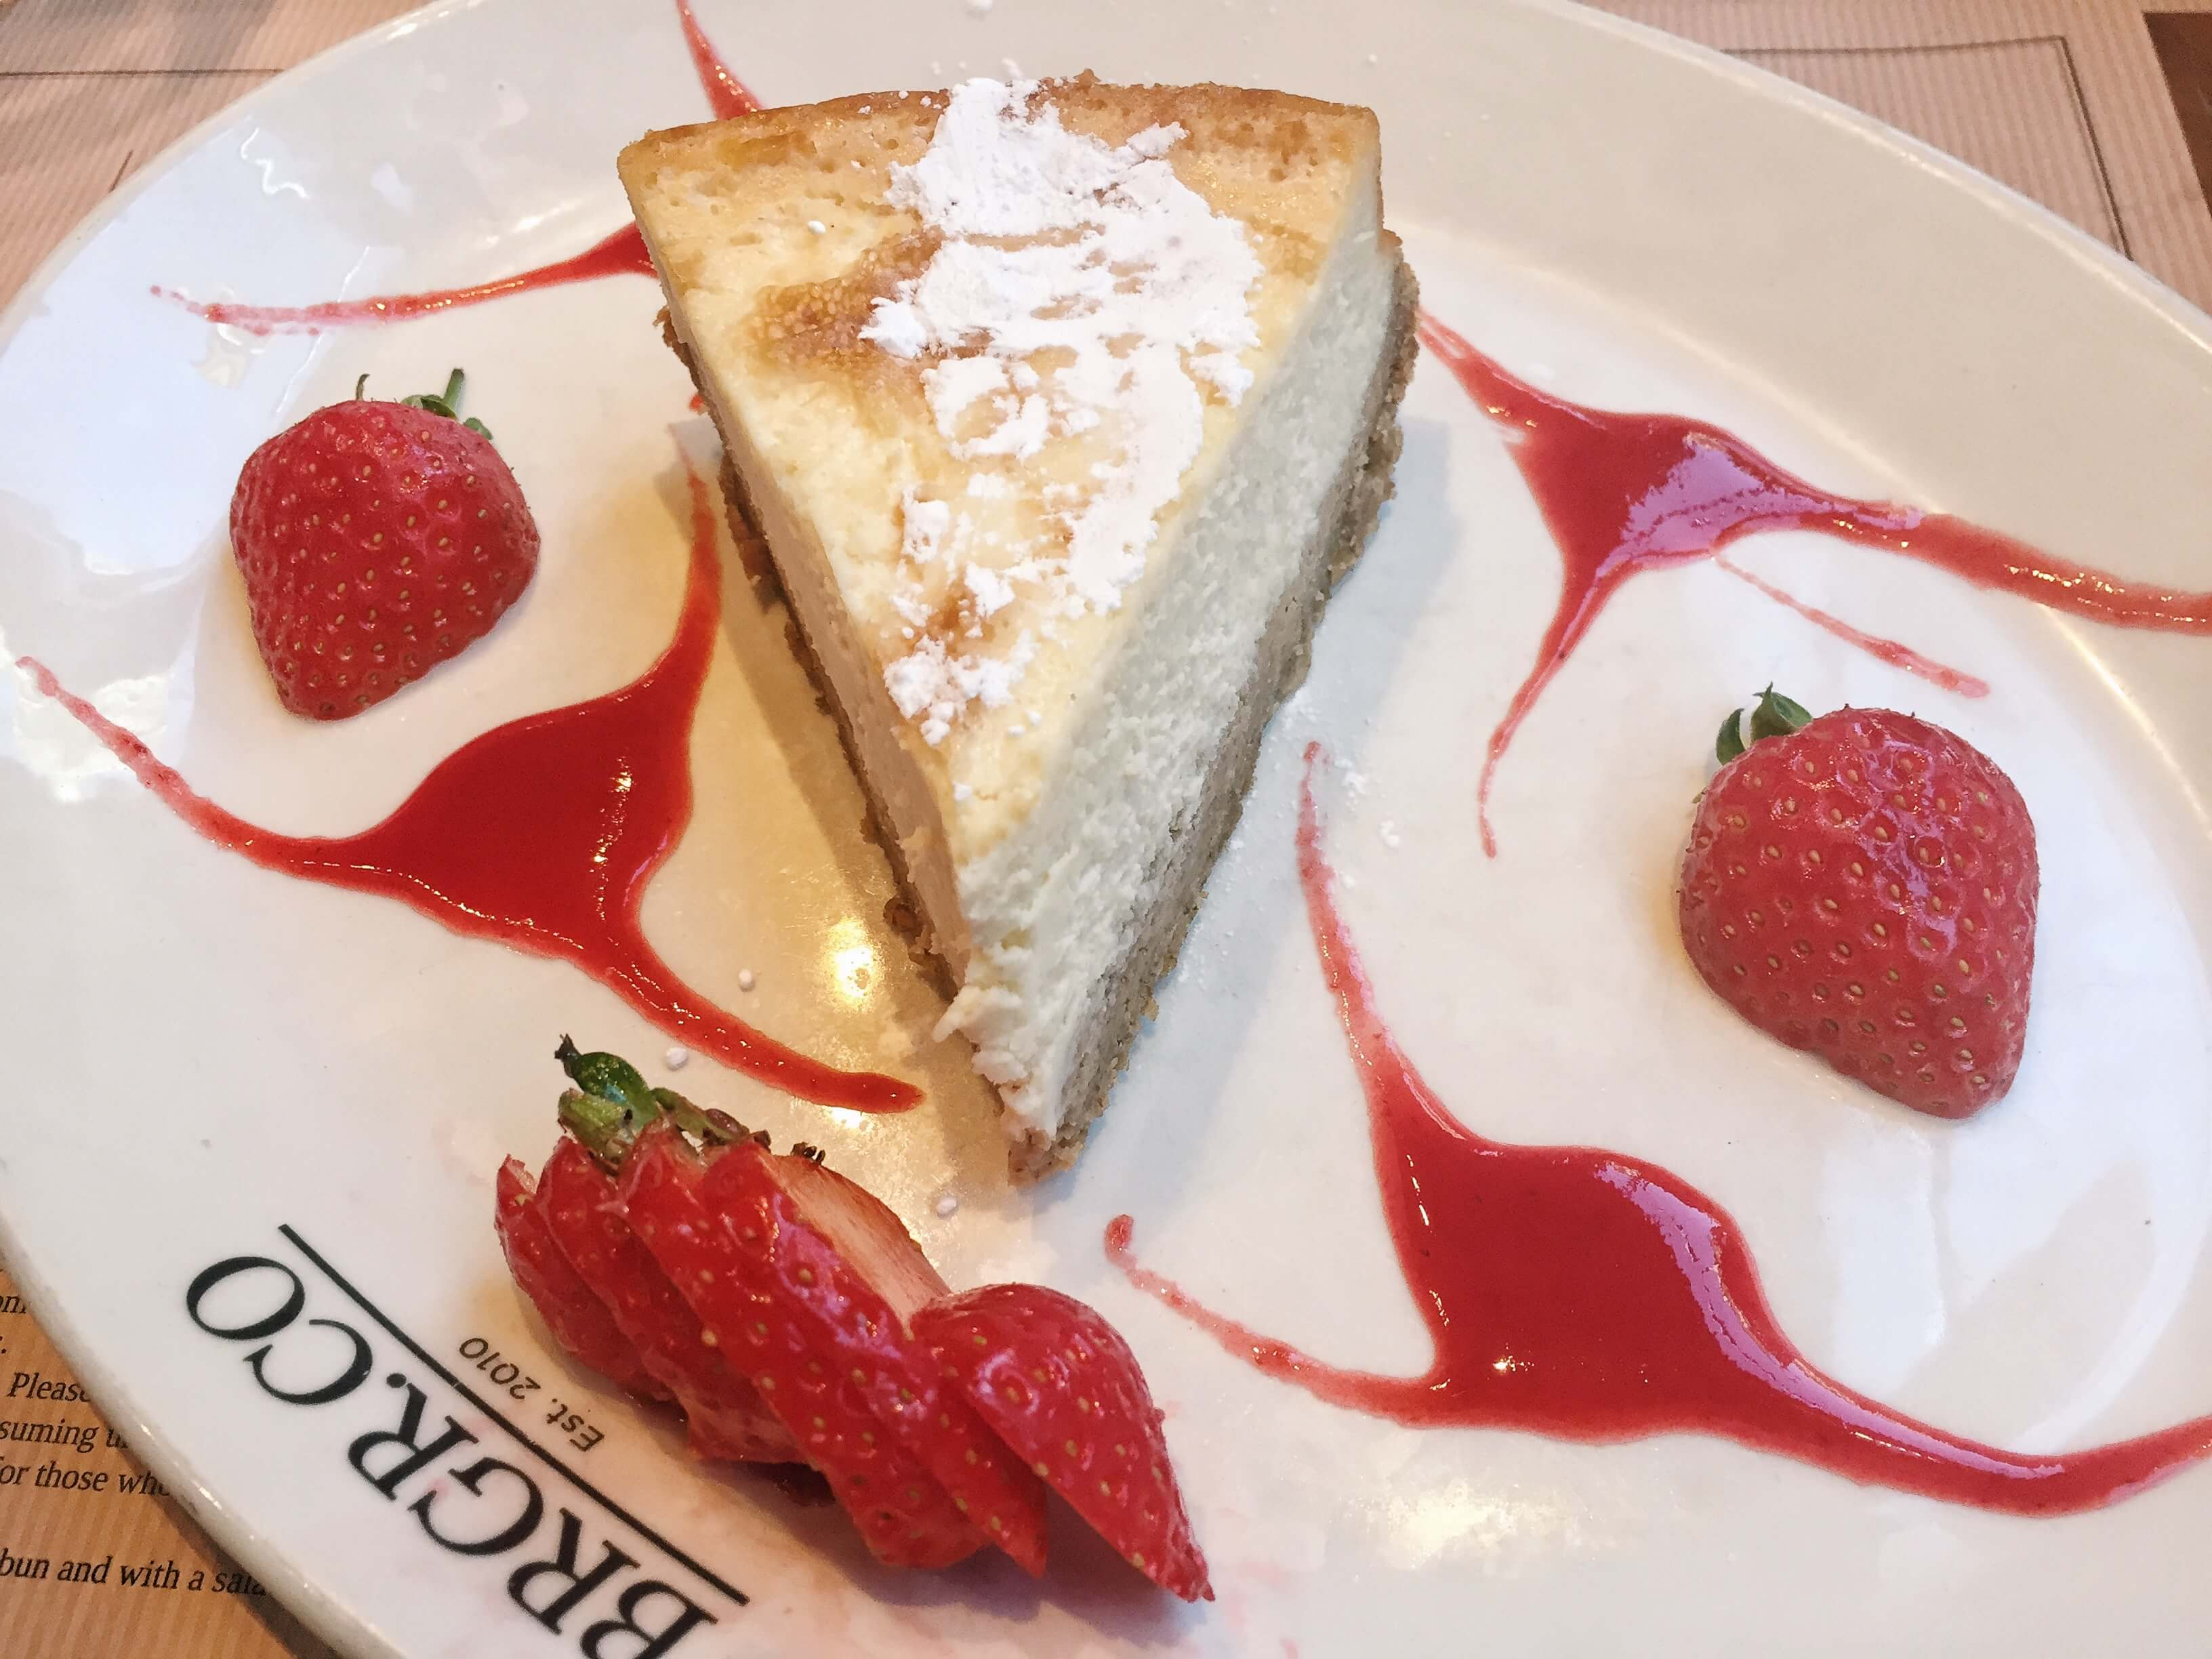 Baked vanilla cheesecake with strawberries from BRGR.CO in Soho, London